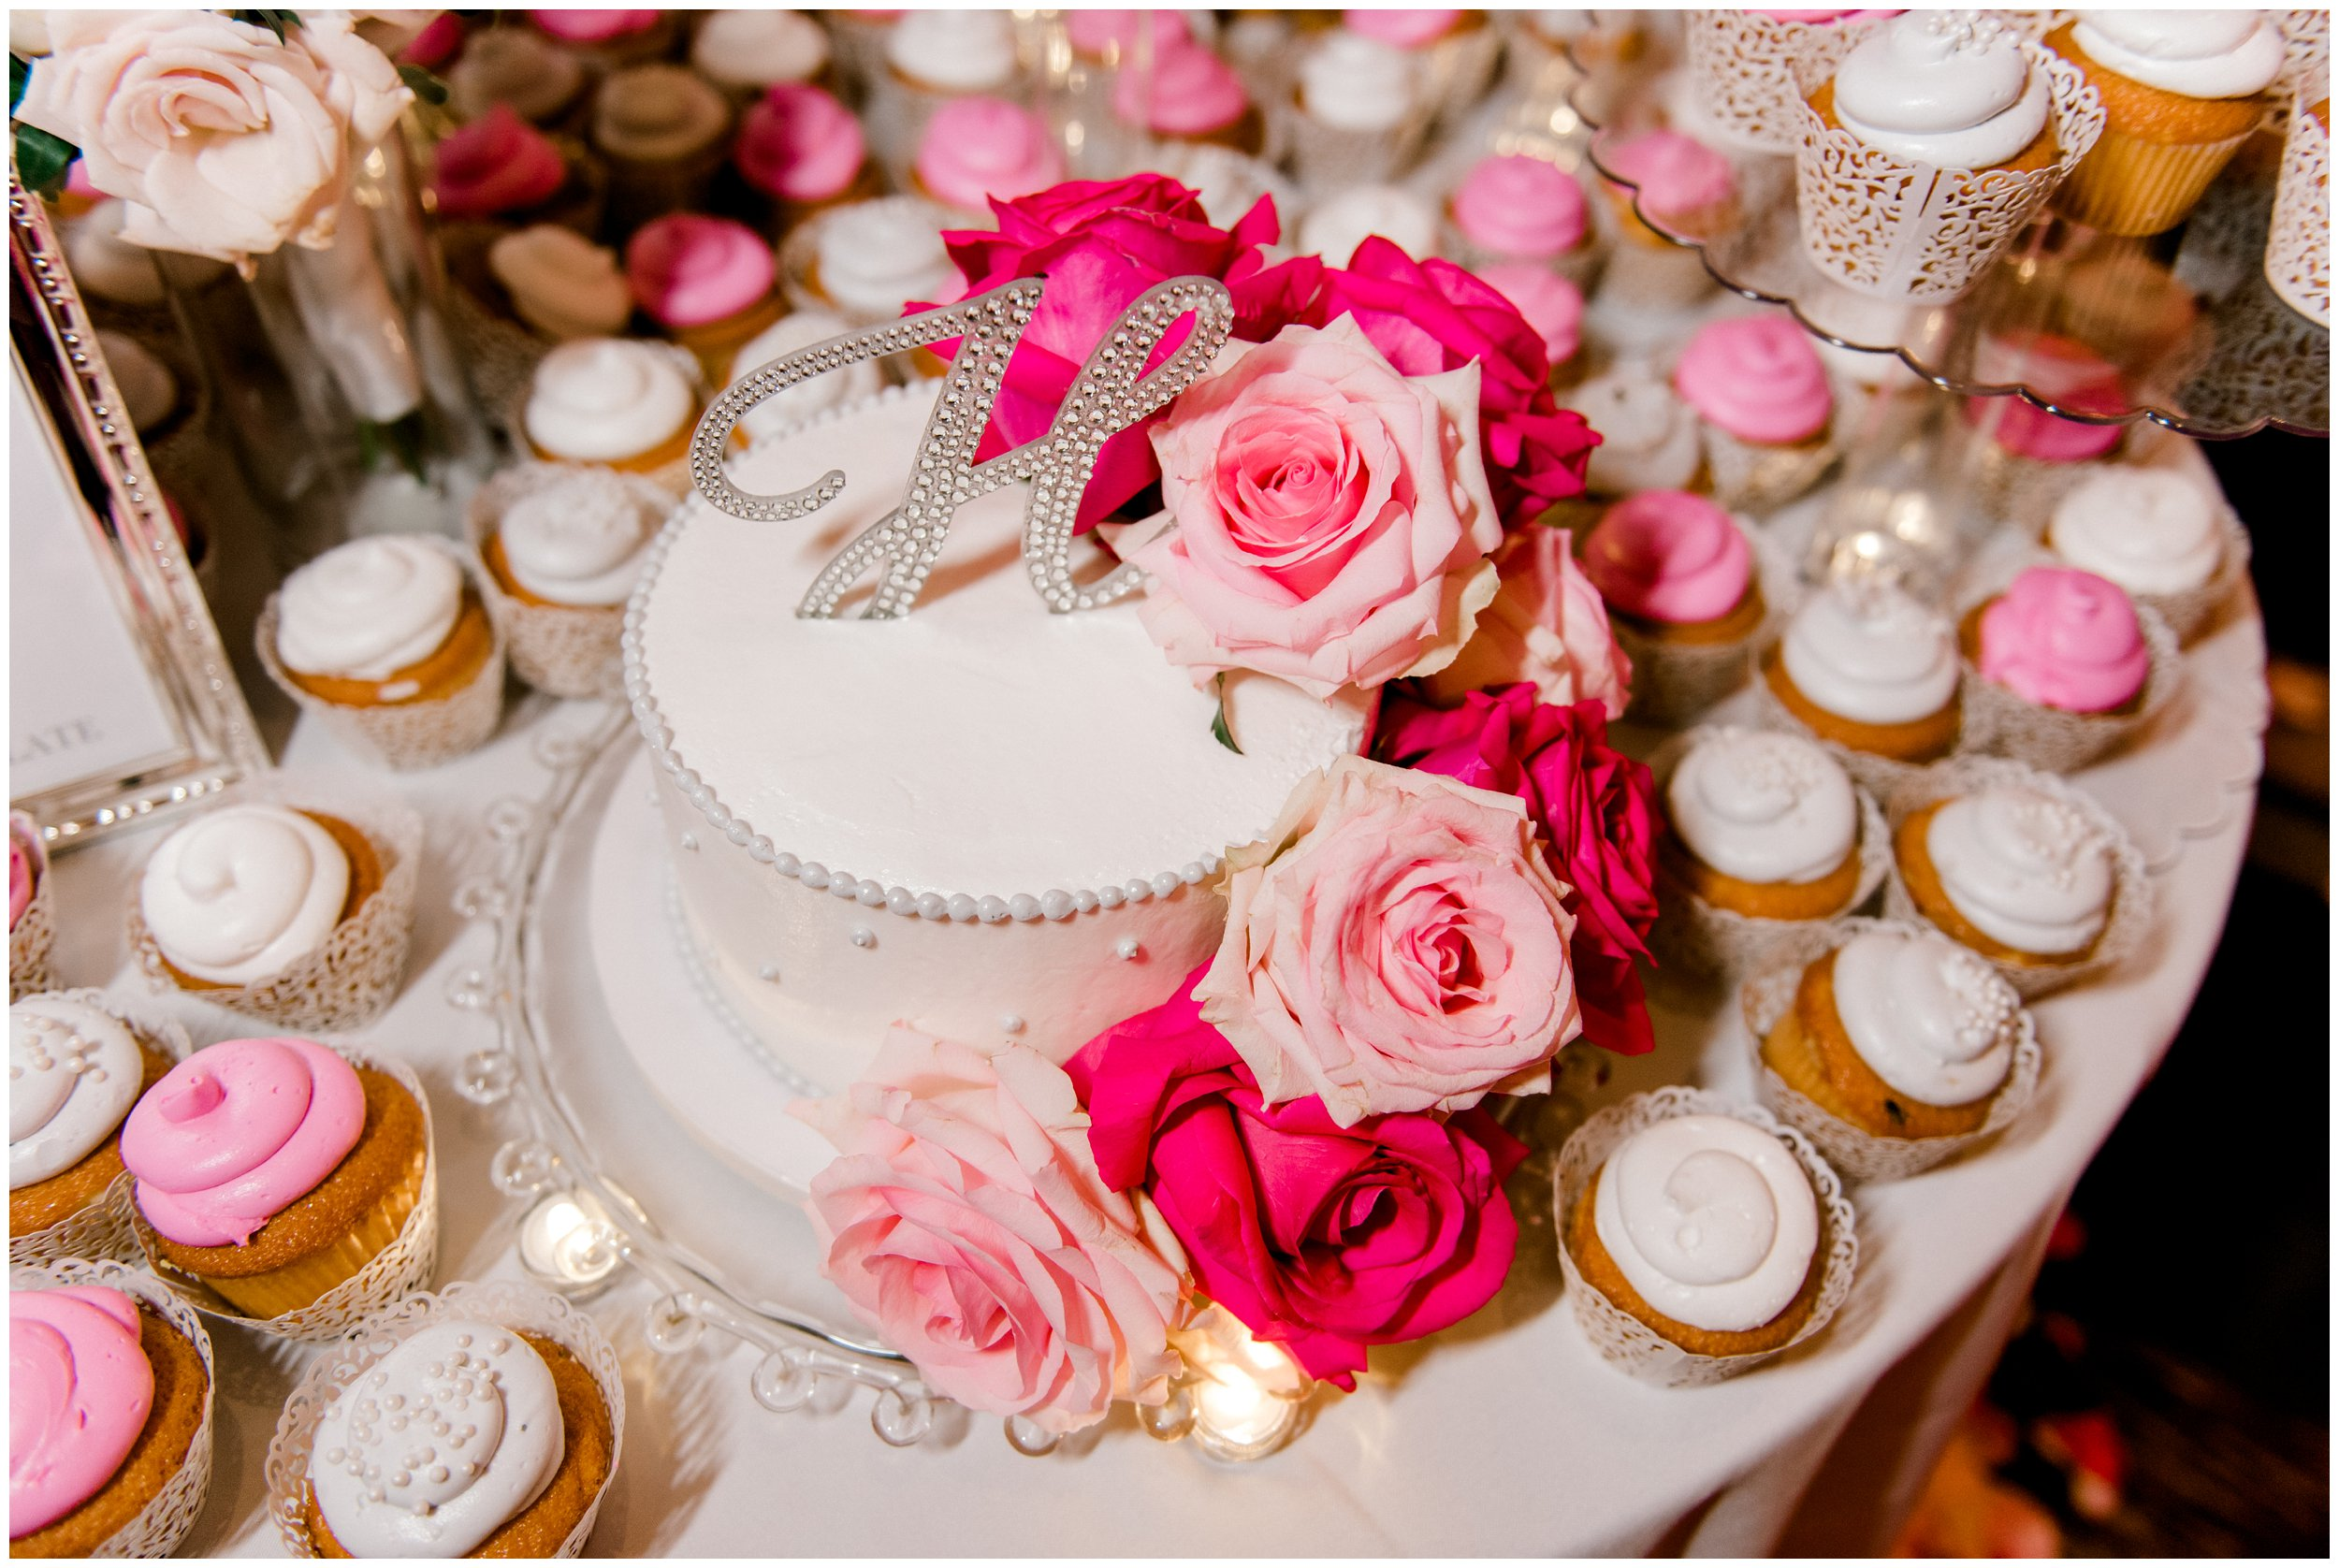 Beautiful wedding cake with pink roses